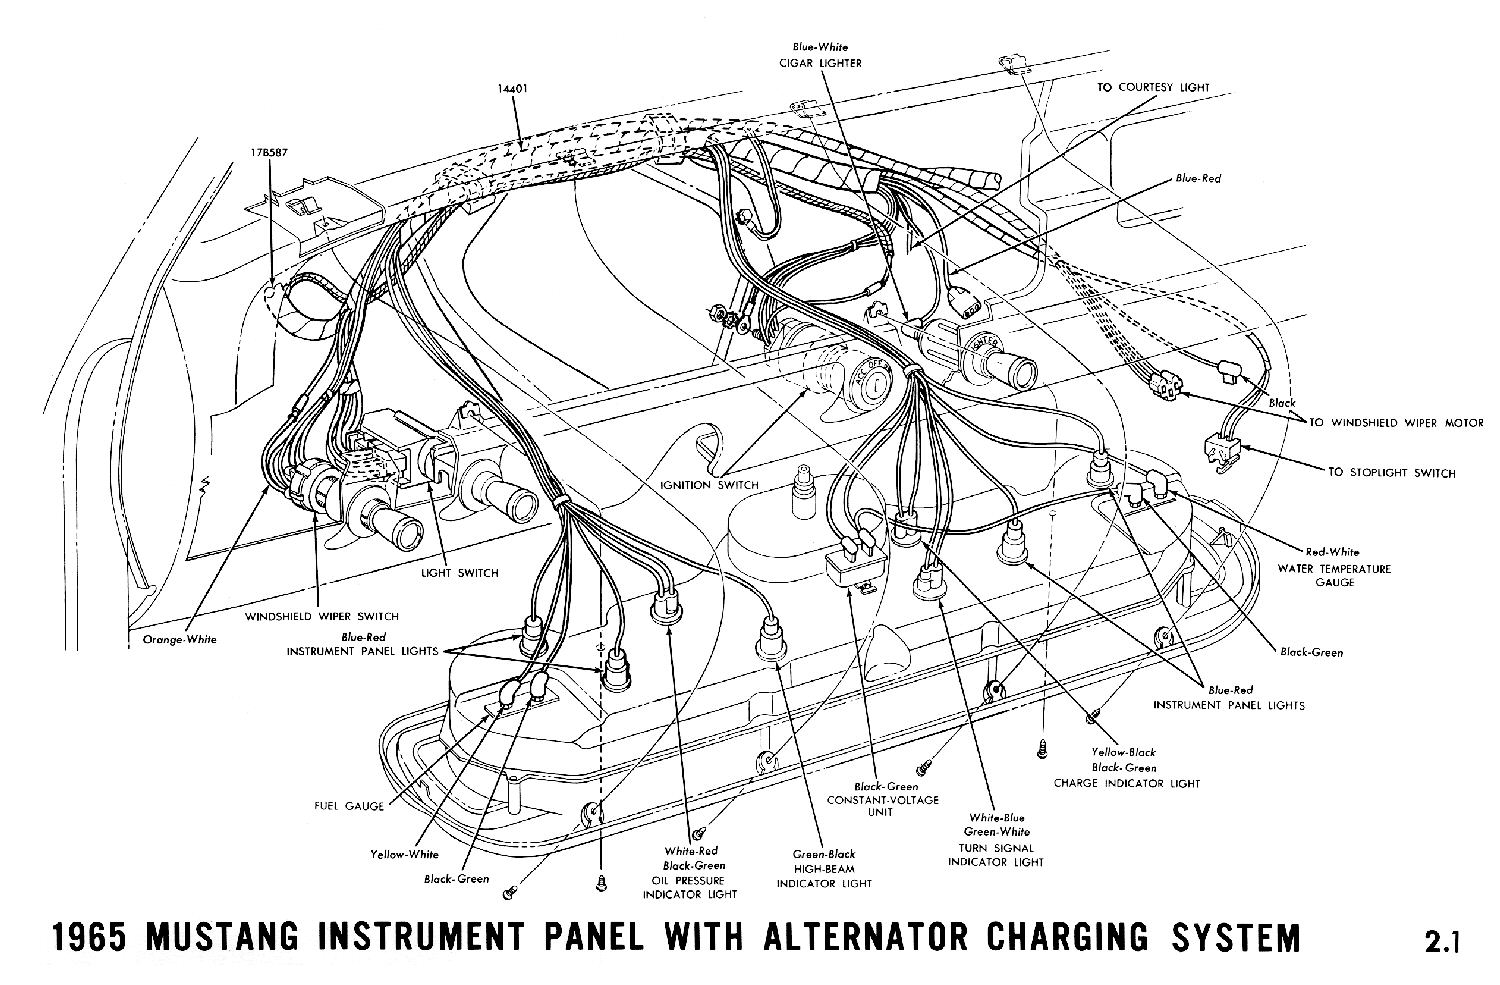 hight resolution of 1965 mustang wiring diagrams average joe restoration 65 mustang complete wiring harness 65 mustang wiring harness